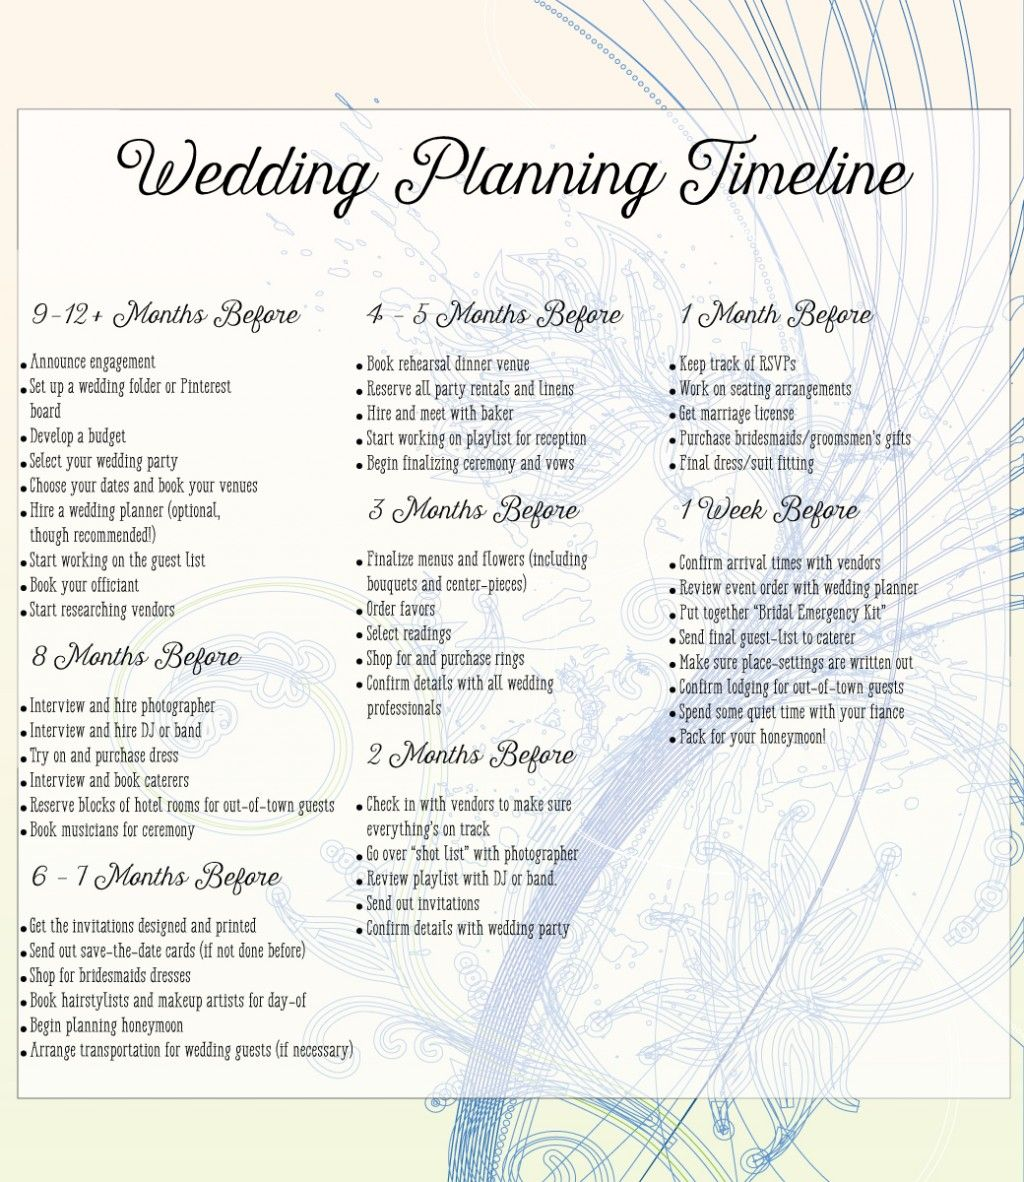 Complete Wedding Checklist: Things Needed For Planning A Wedding: A Complete Checklist